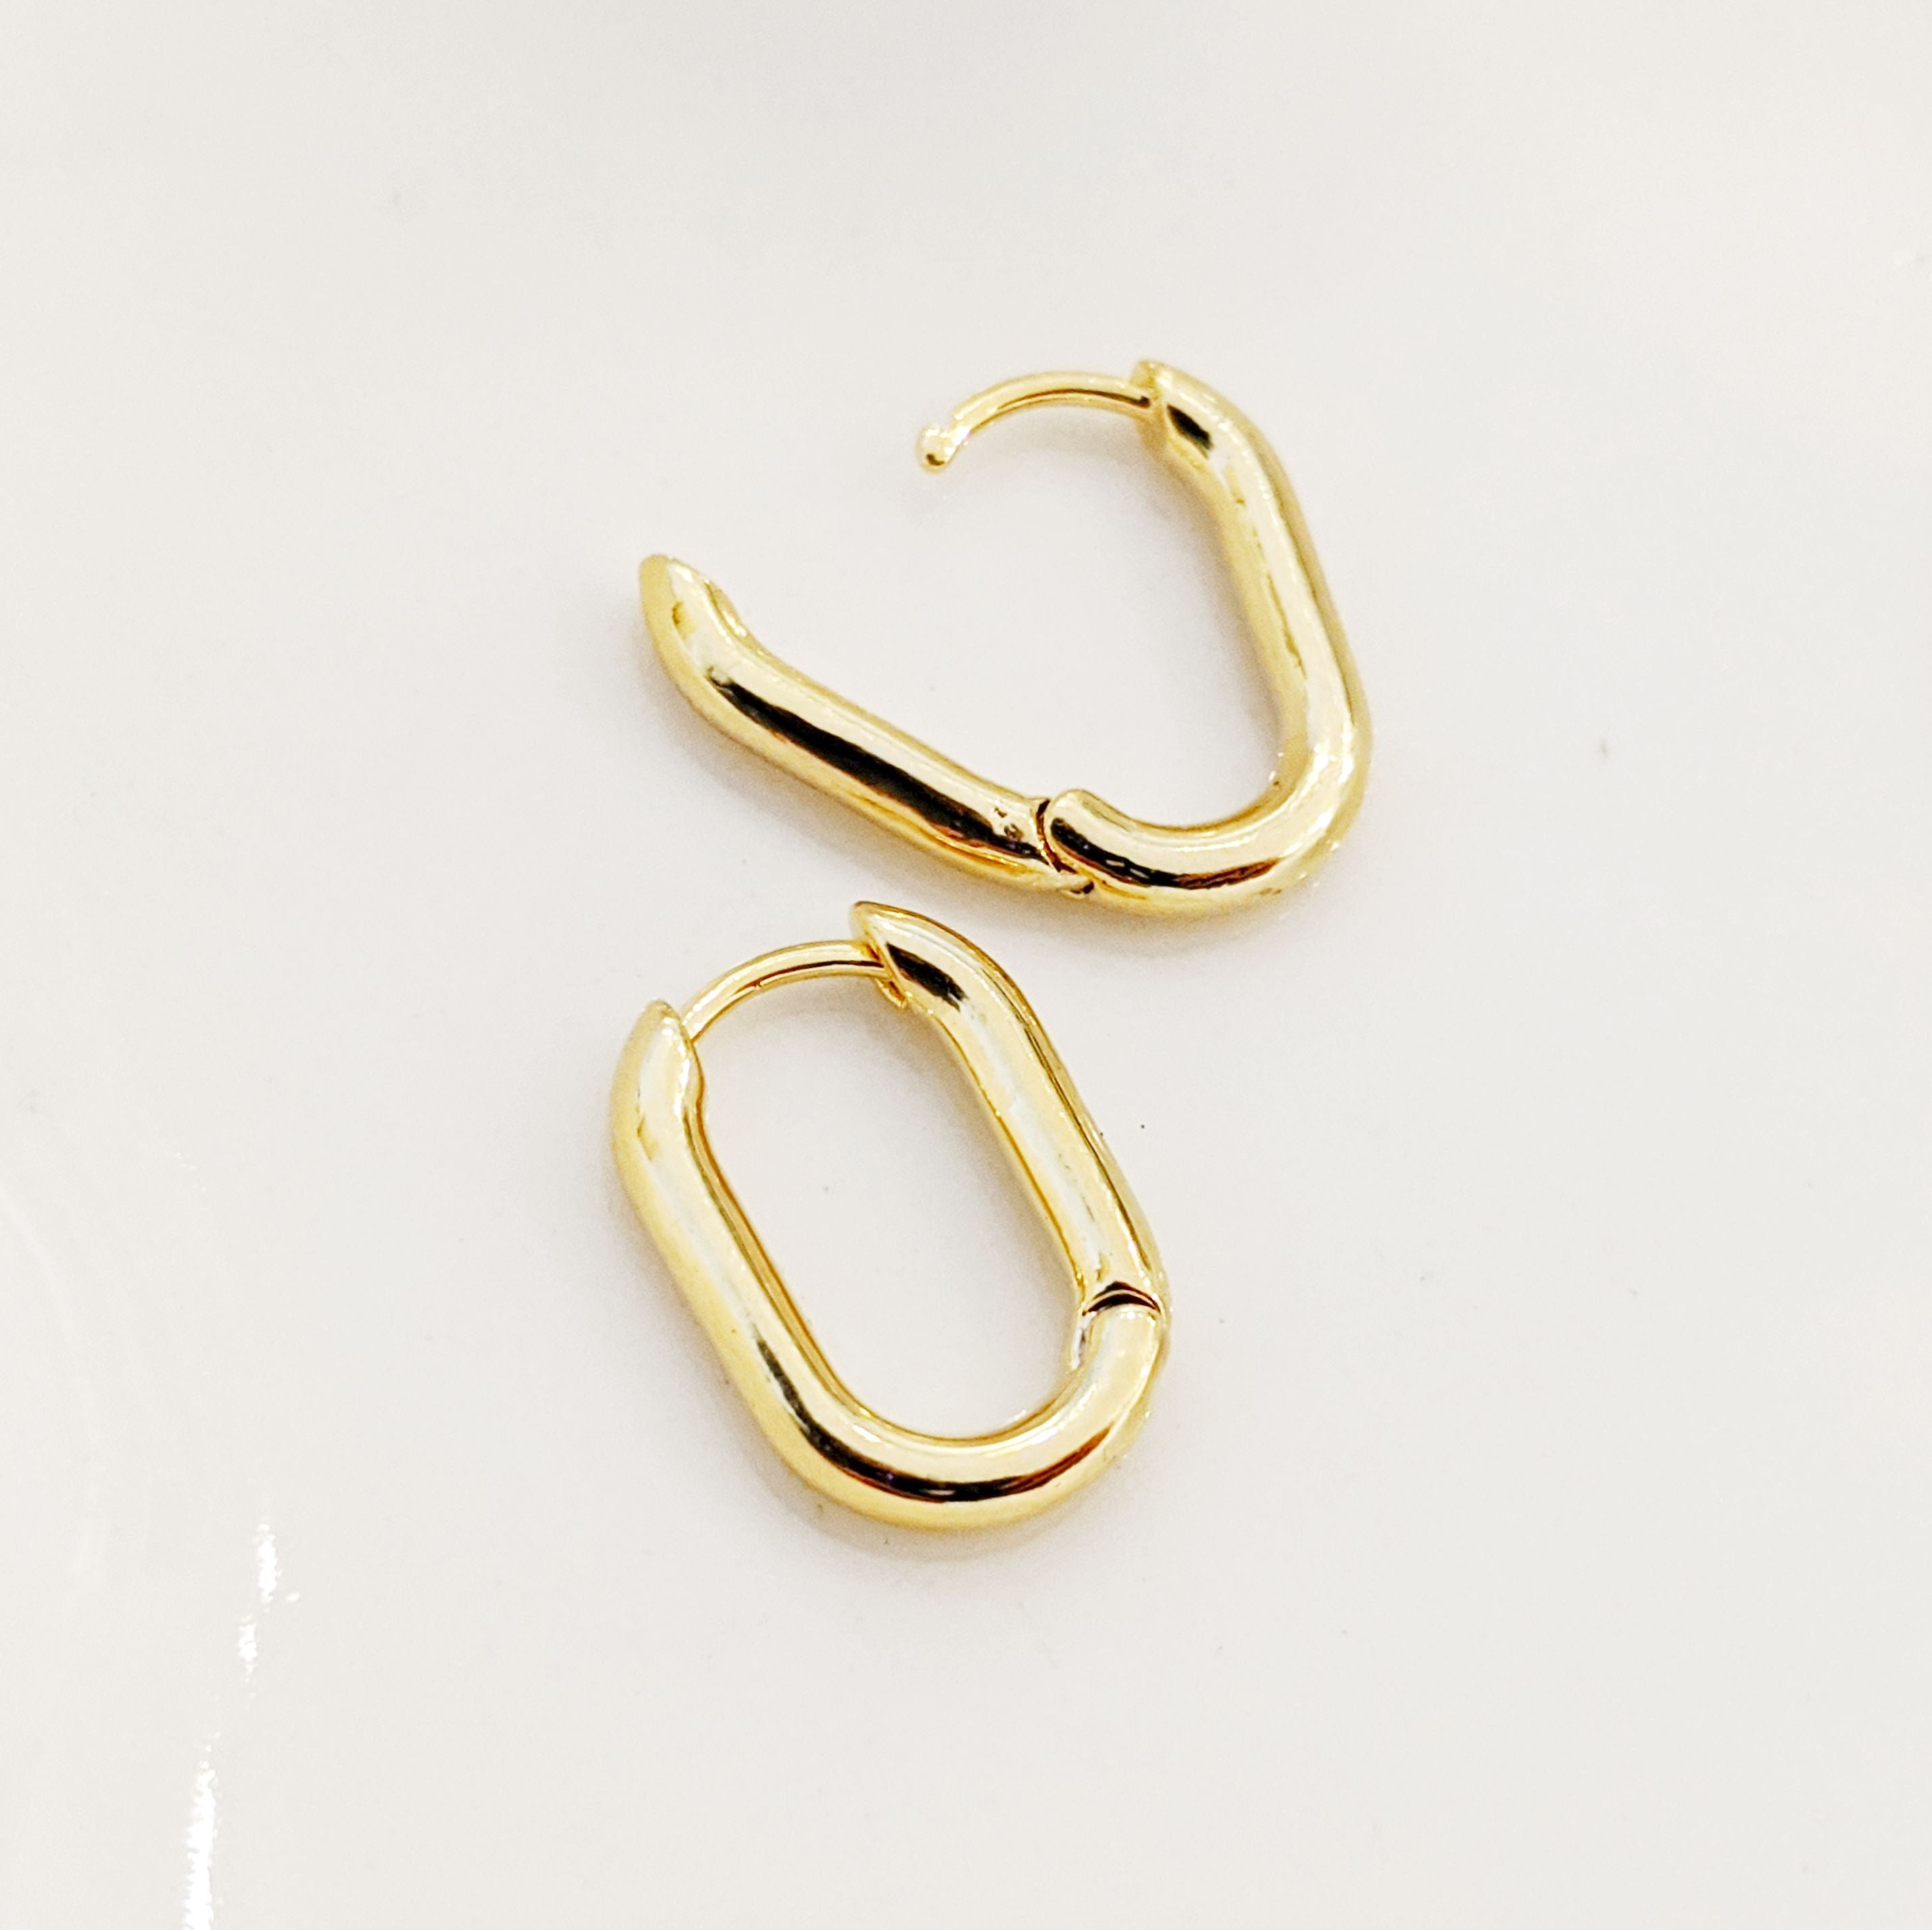 Hoop Earrings - Olia Oval Hoops - Huggers - Actual Size